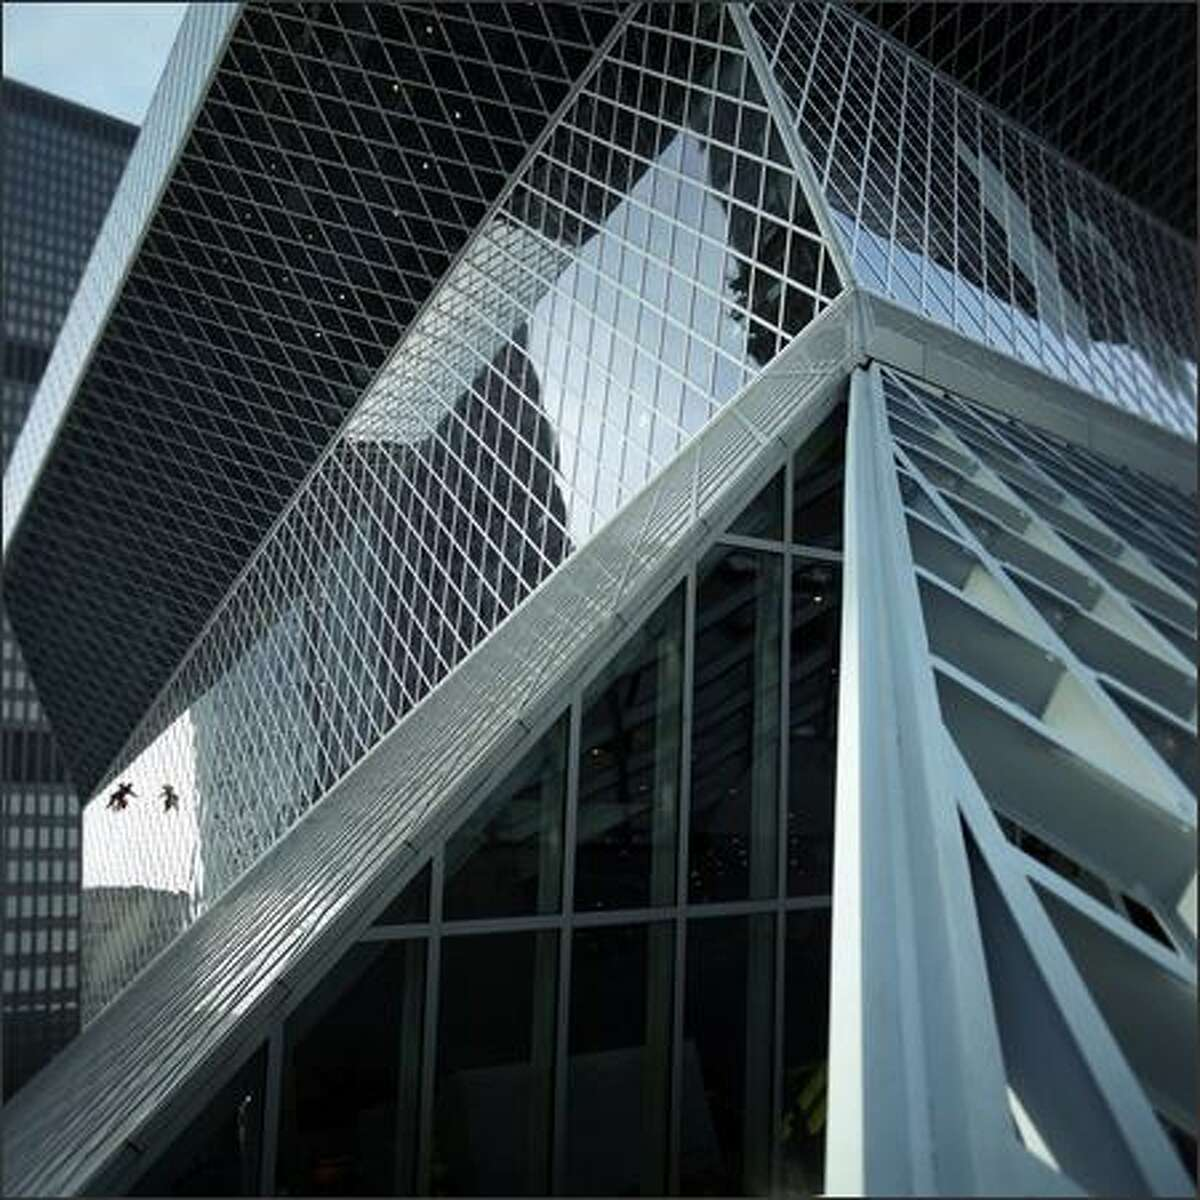 Criticism was directed at the new Seattle Central Library.